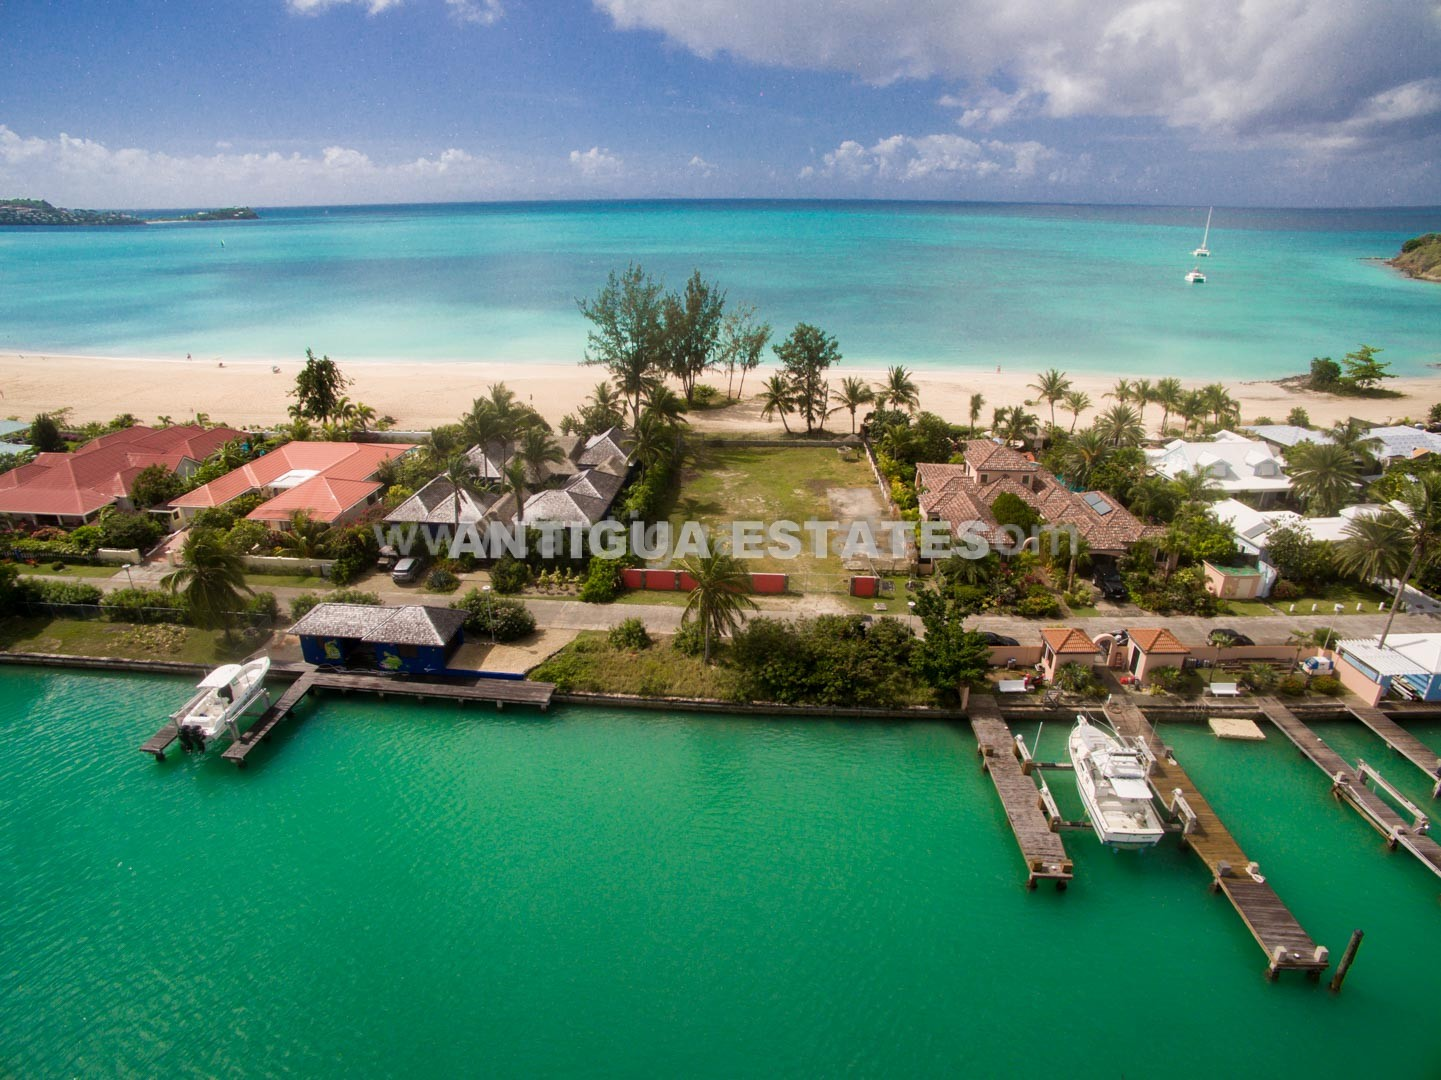 View this Beach Land in Jolly Harbour Antigua